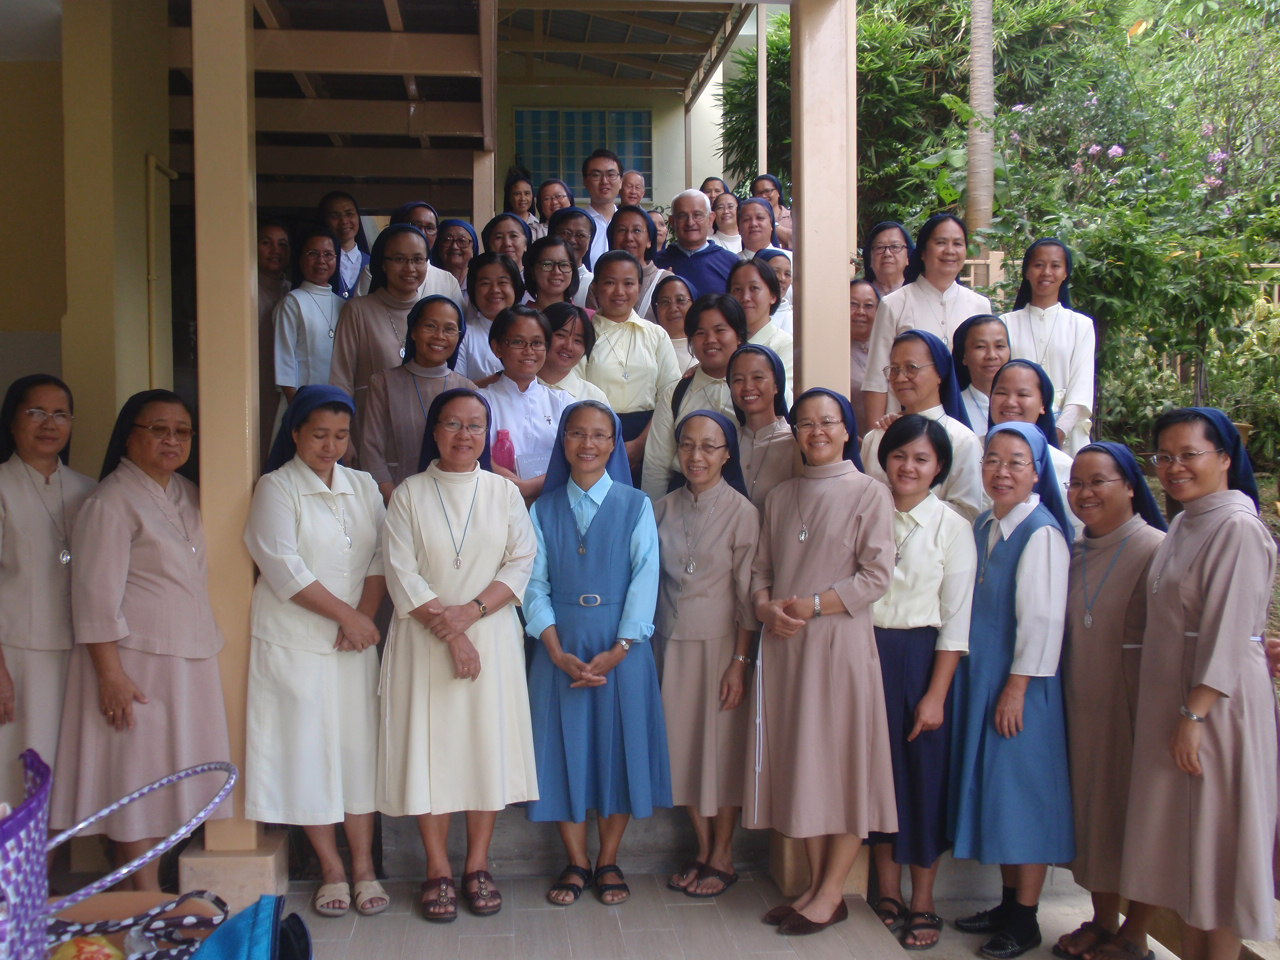 Religious pose with Fr Faure during the break at Loreto Convent Jan 14.